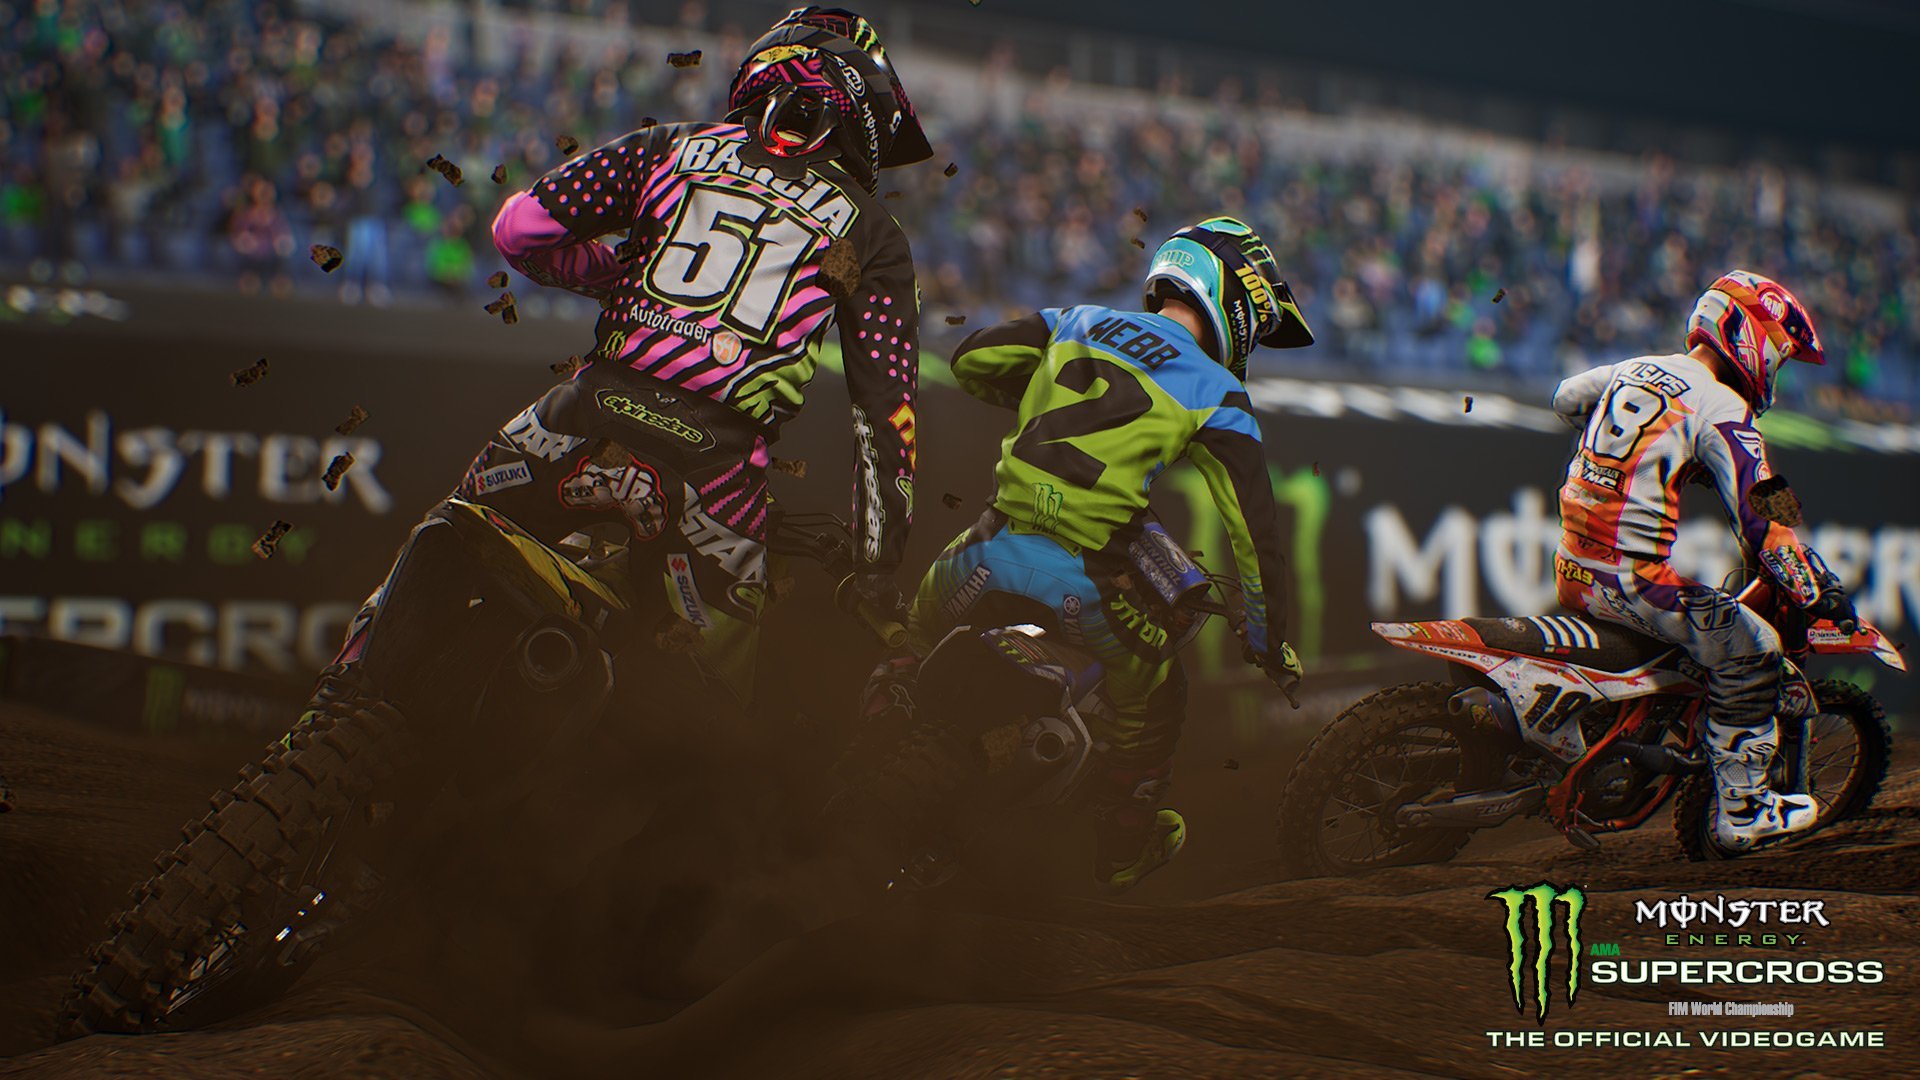 Monster Energy Supercross Track Editor Is Exactly What I Am Looking For